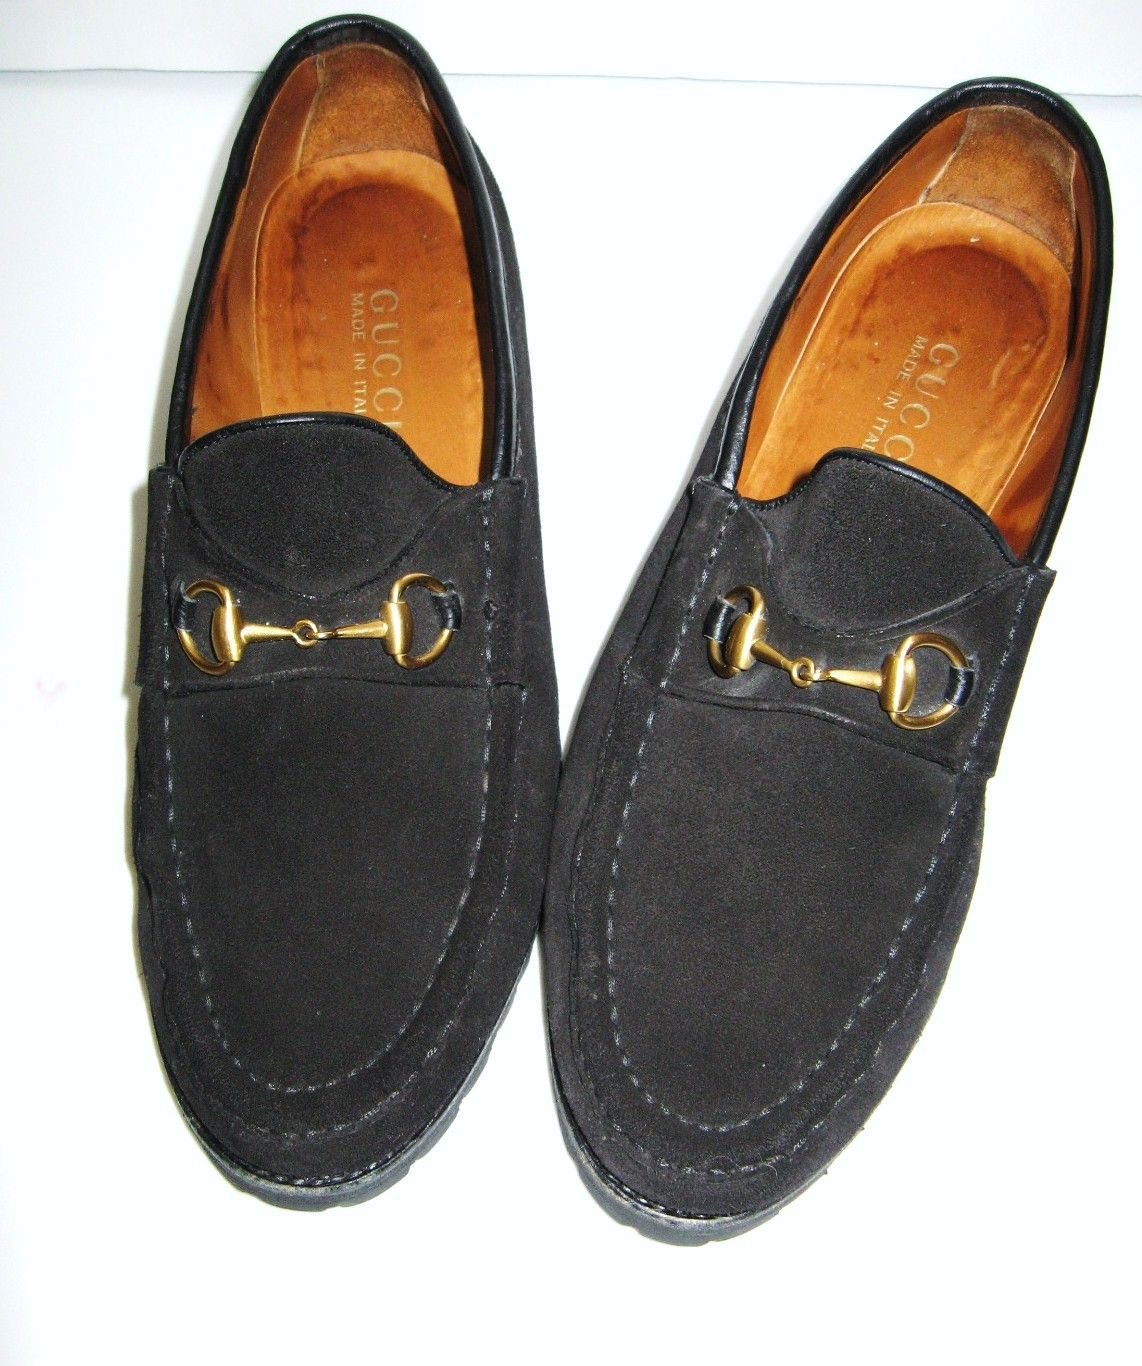 951d751dbcd Women s Classic Penny Loafers